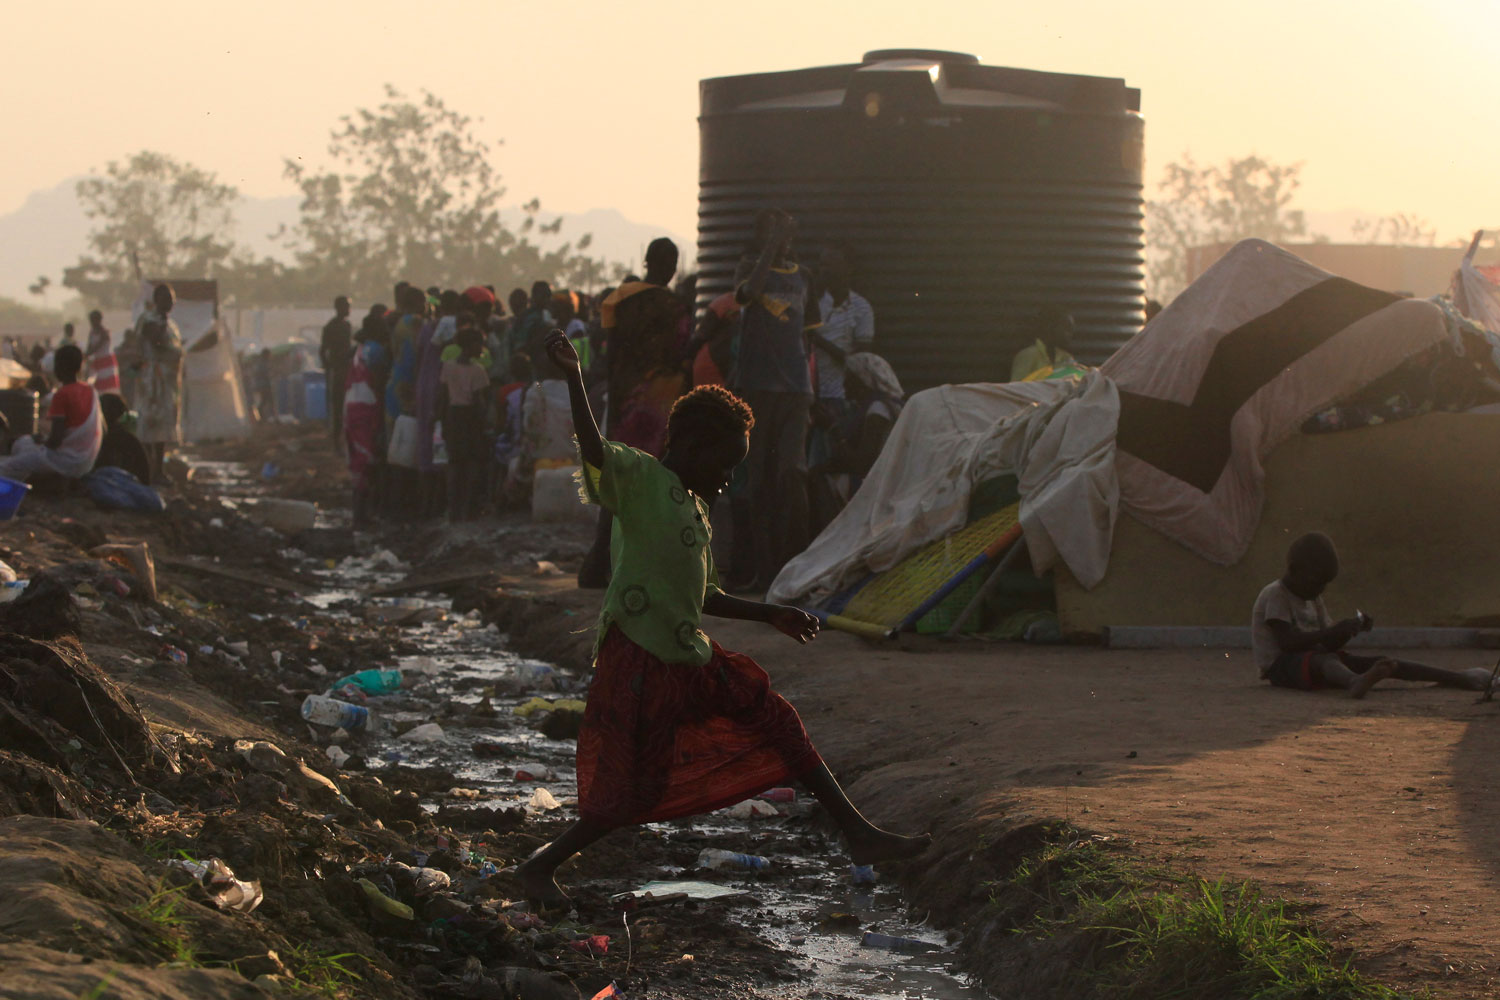 Jan. 10, 2014. A barefoot girl jumps over an open drain filled with rubbish at Tomping camp in Juba, South Sudan.